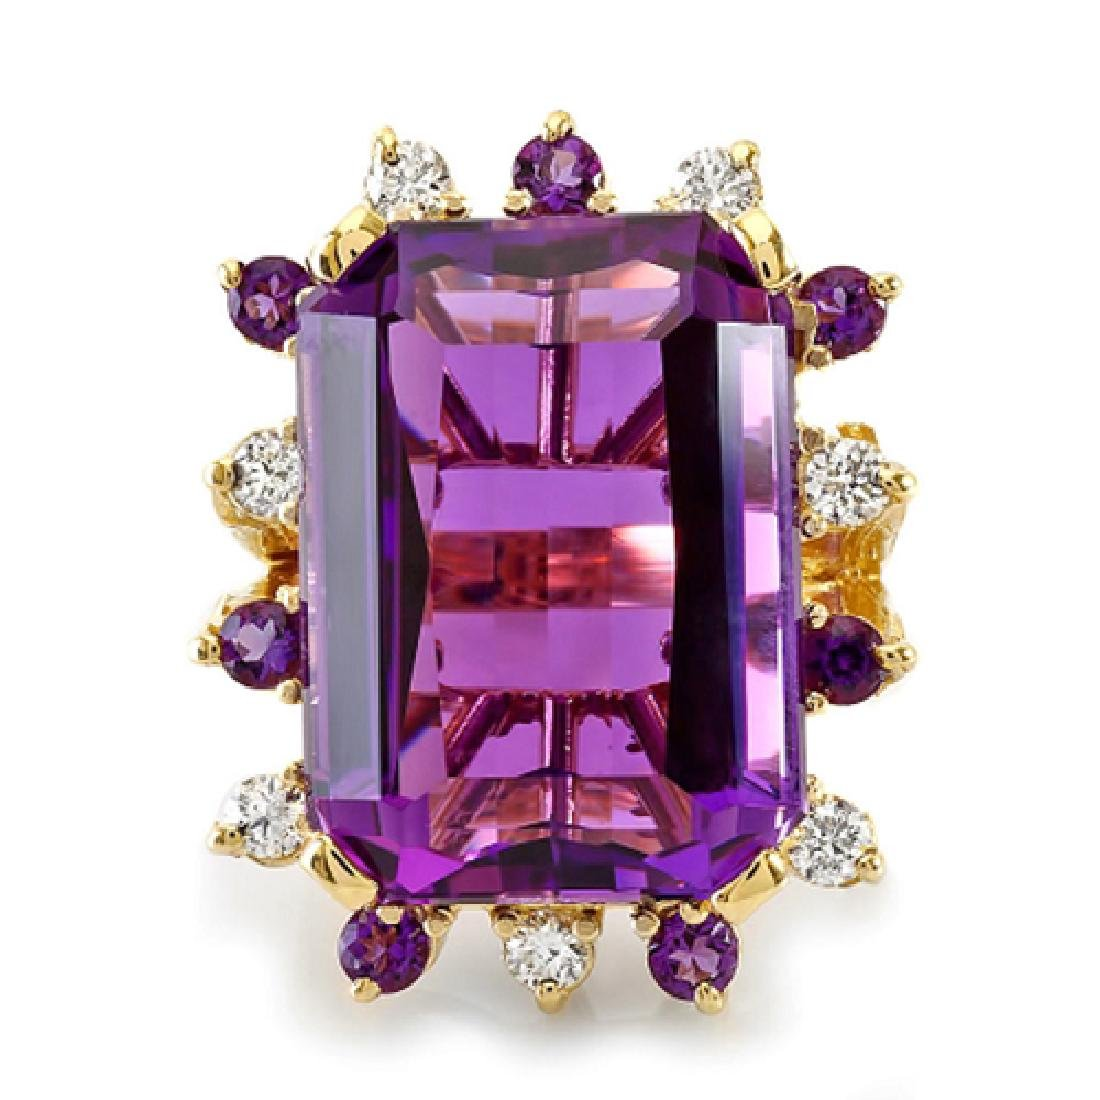 35.56 Carat Natural Amethyst 18K Solid Yellow Gold